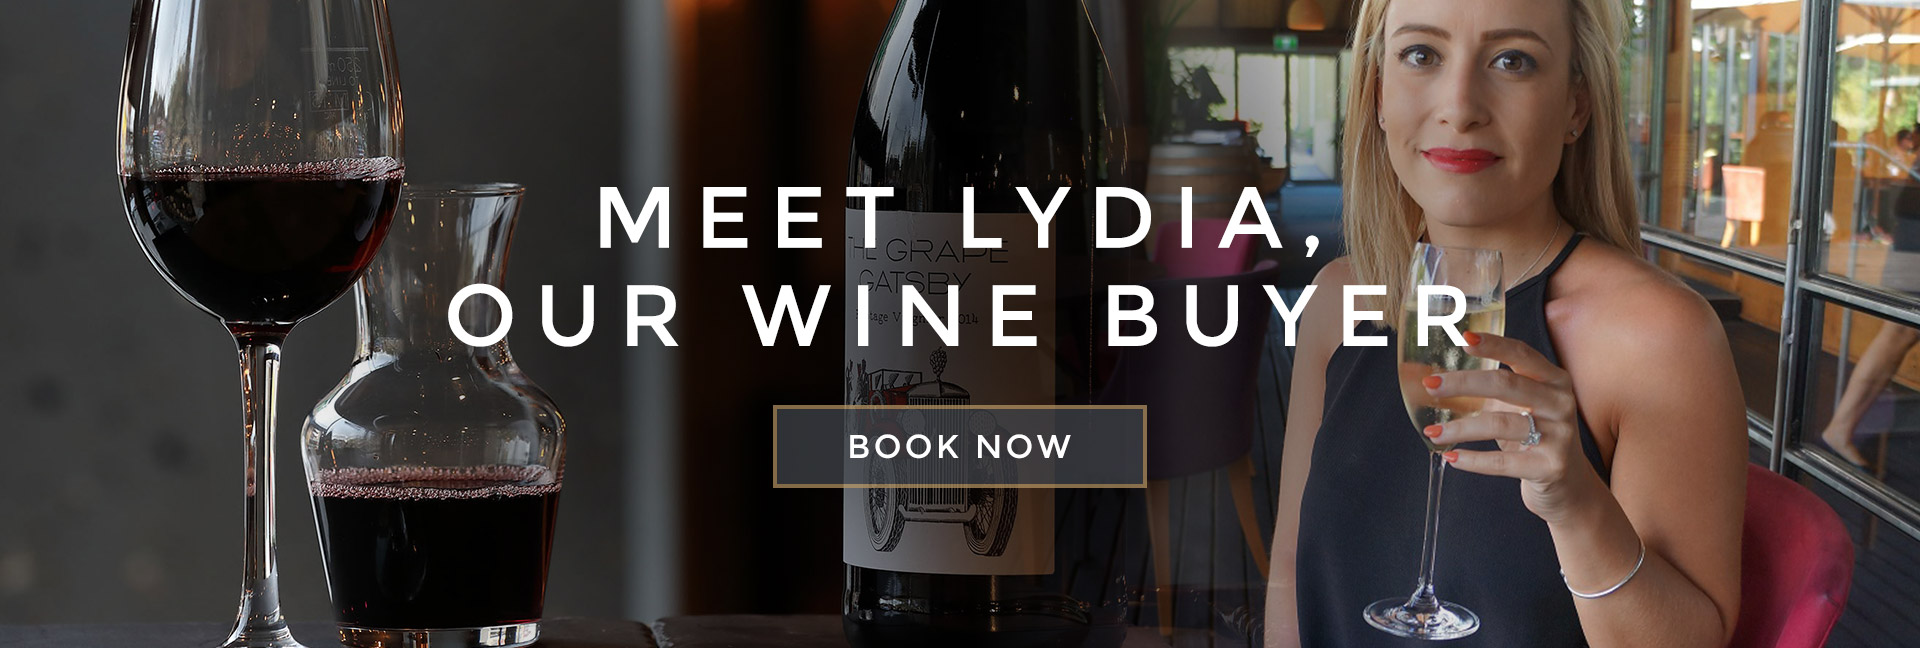 Meet Lydia, our wine buyer at All Bar One Henrietta Street